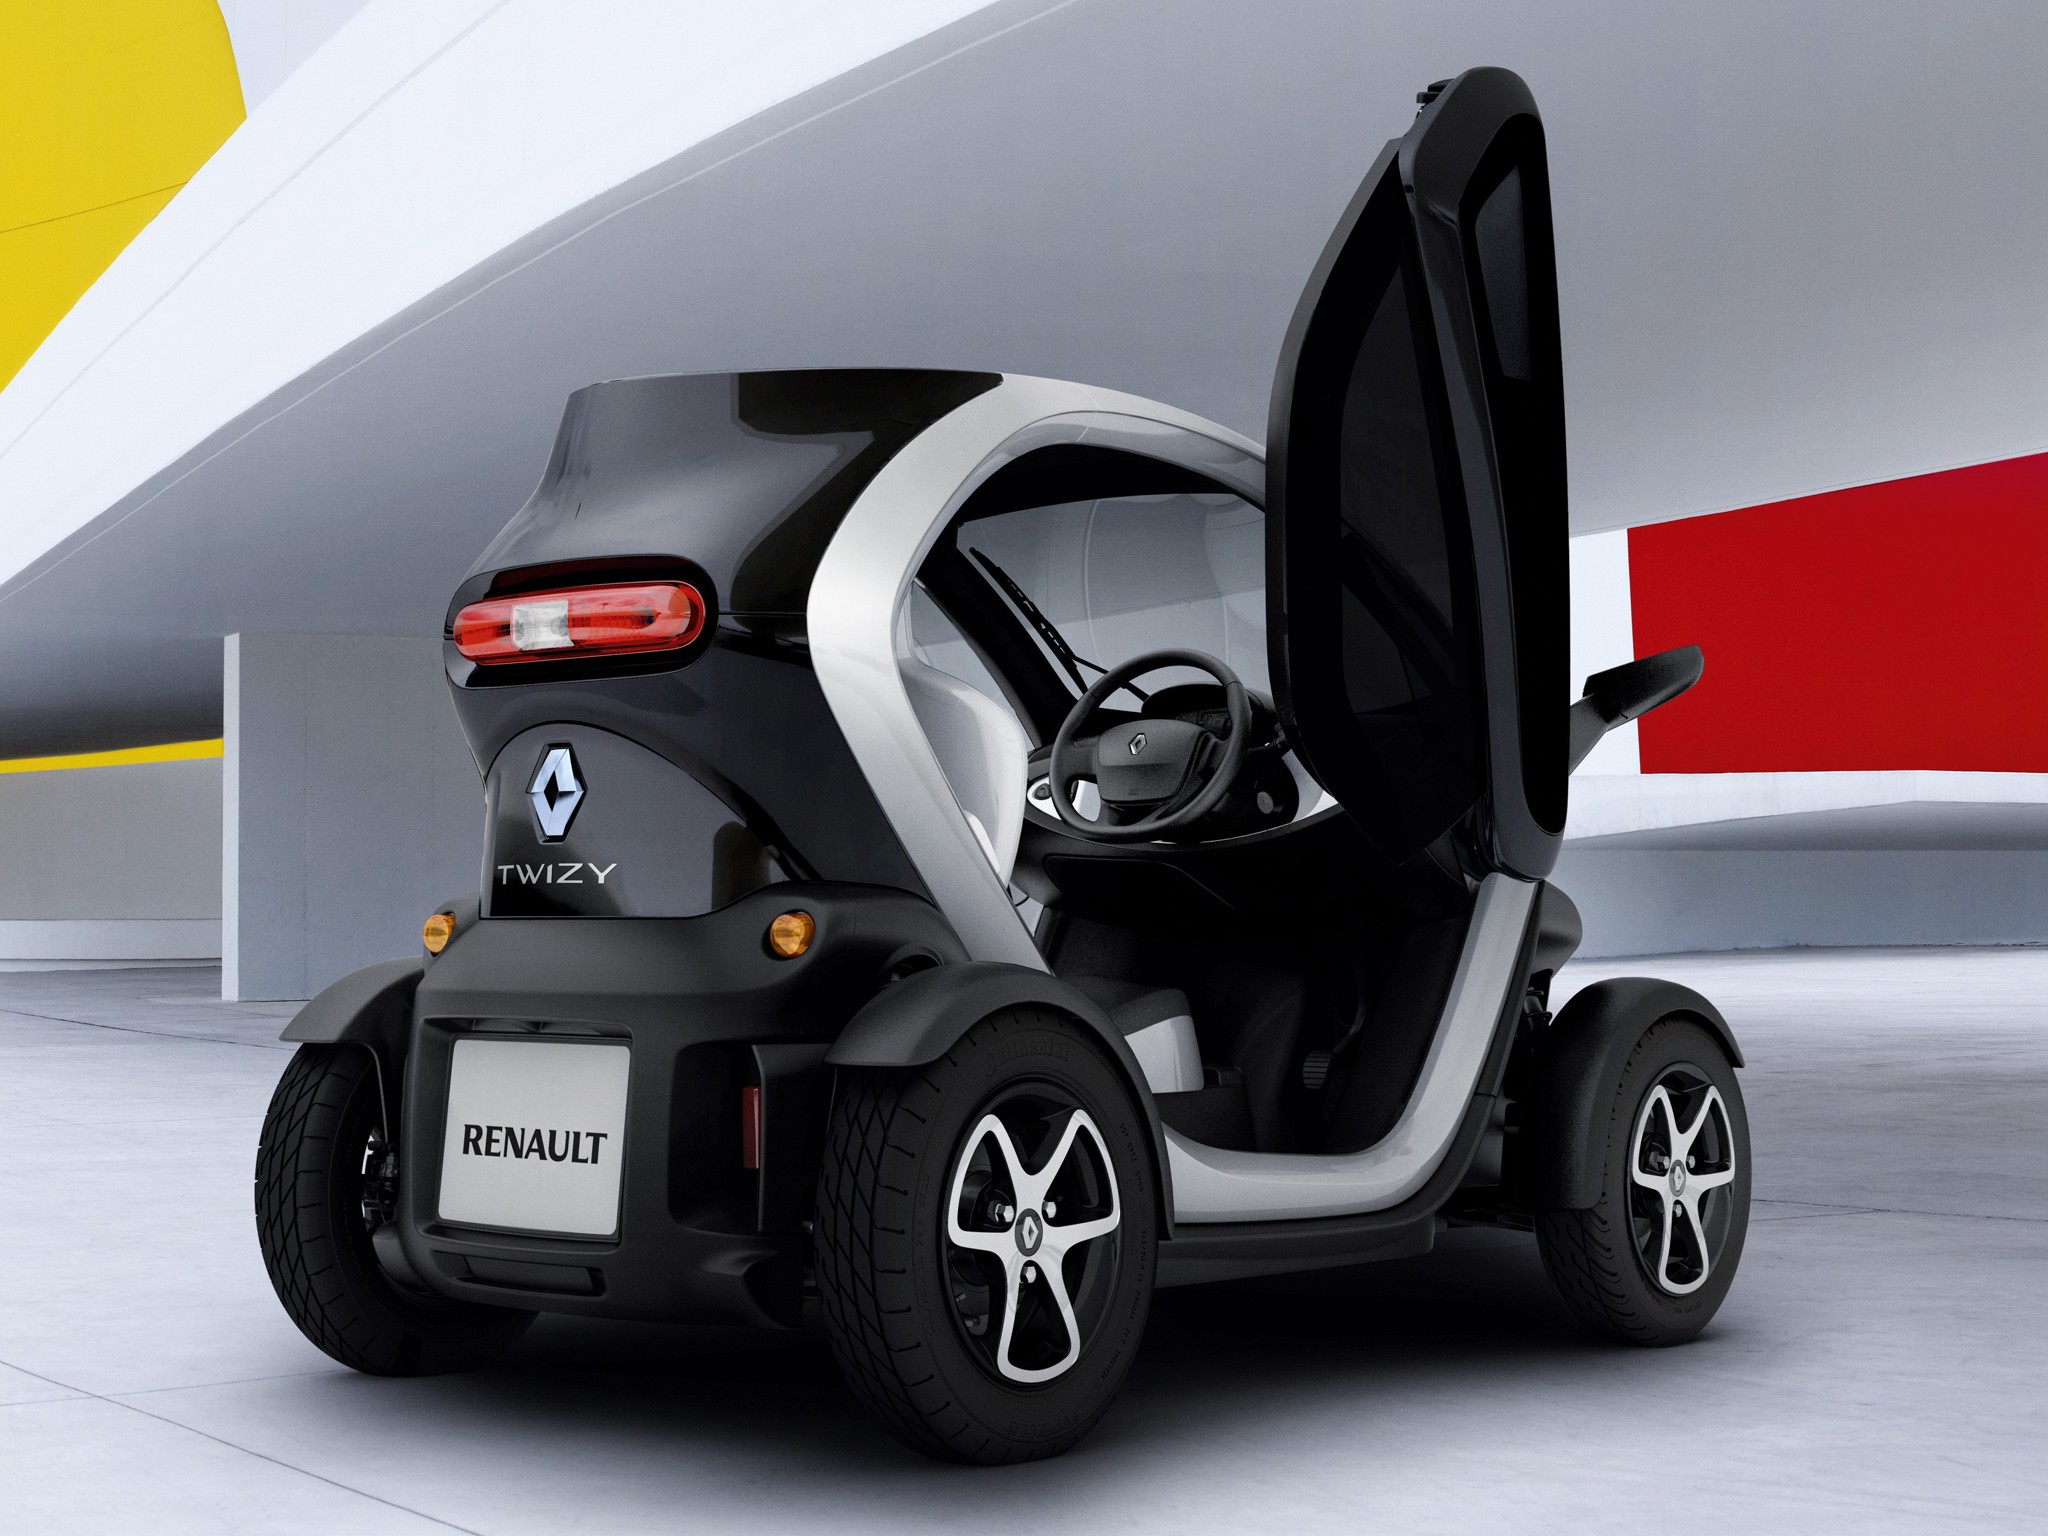 renault twizy specs photos 2012 2013 2014 2015 2016 2017 2018 autoevolution. Black Bedroom Furniture Sets. Home Design Ideas